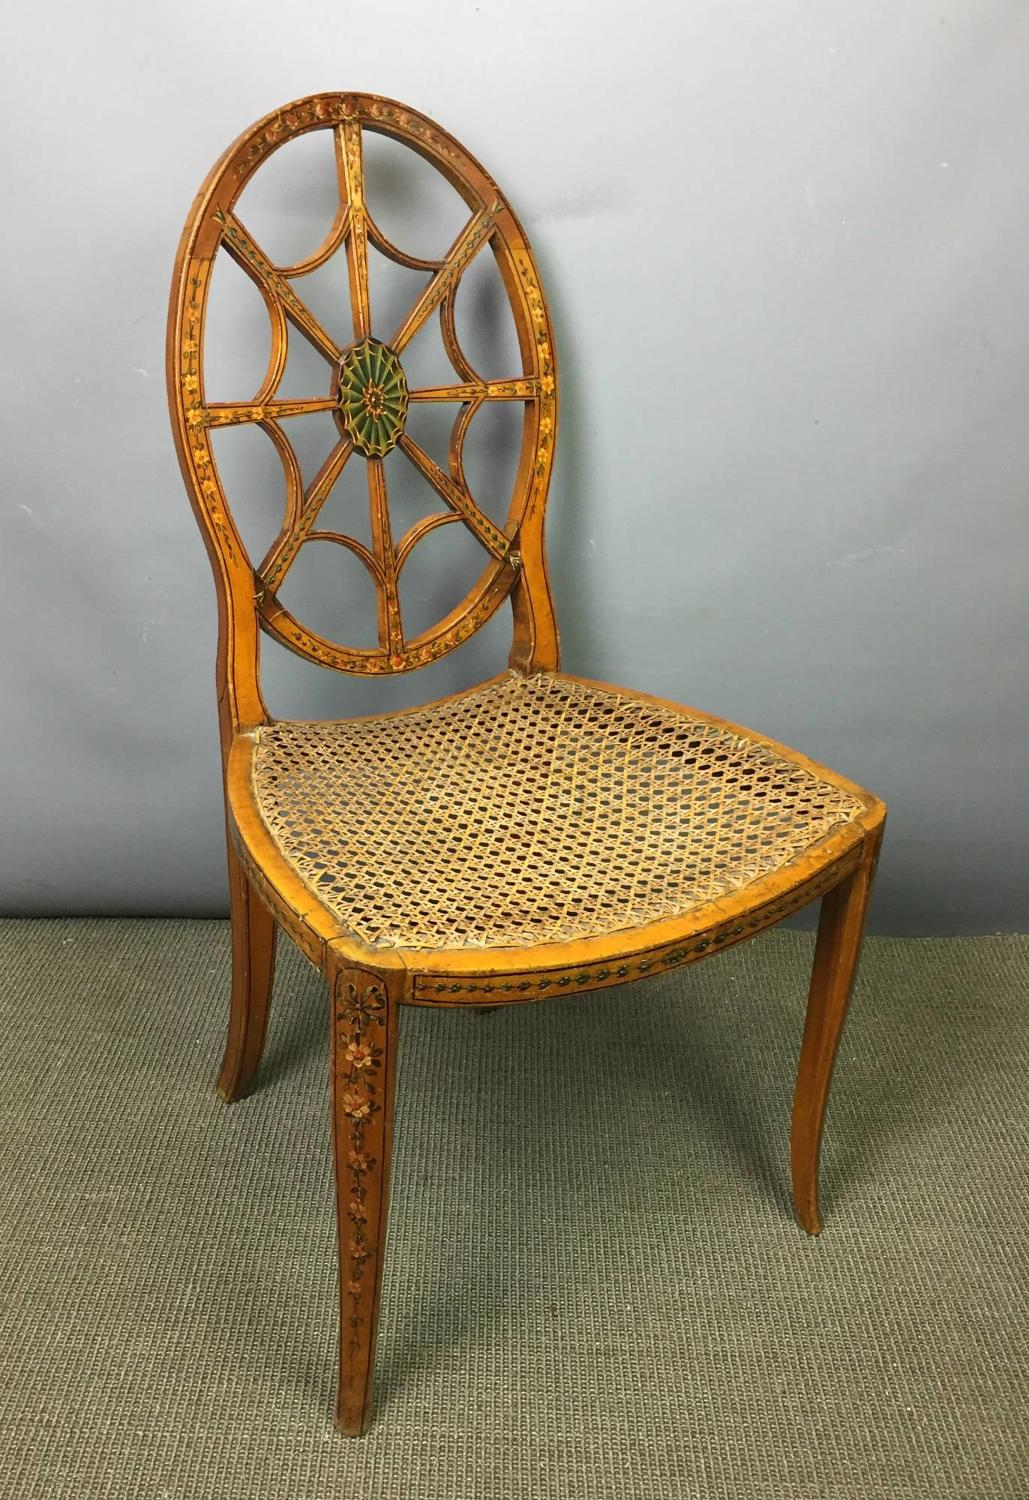 Antique Painted Spider's Web Chair